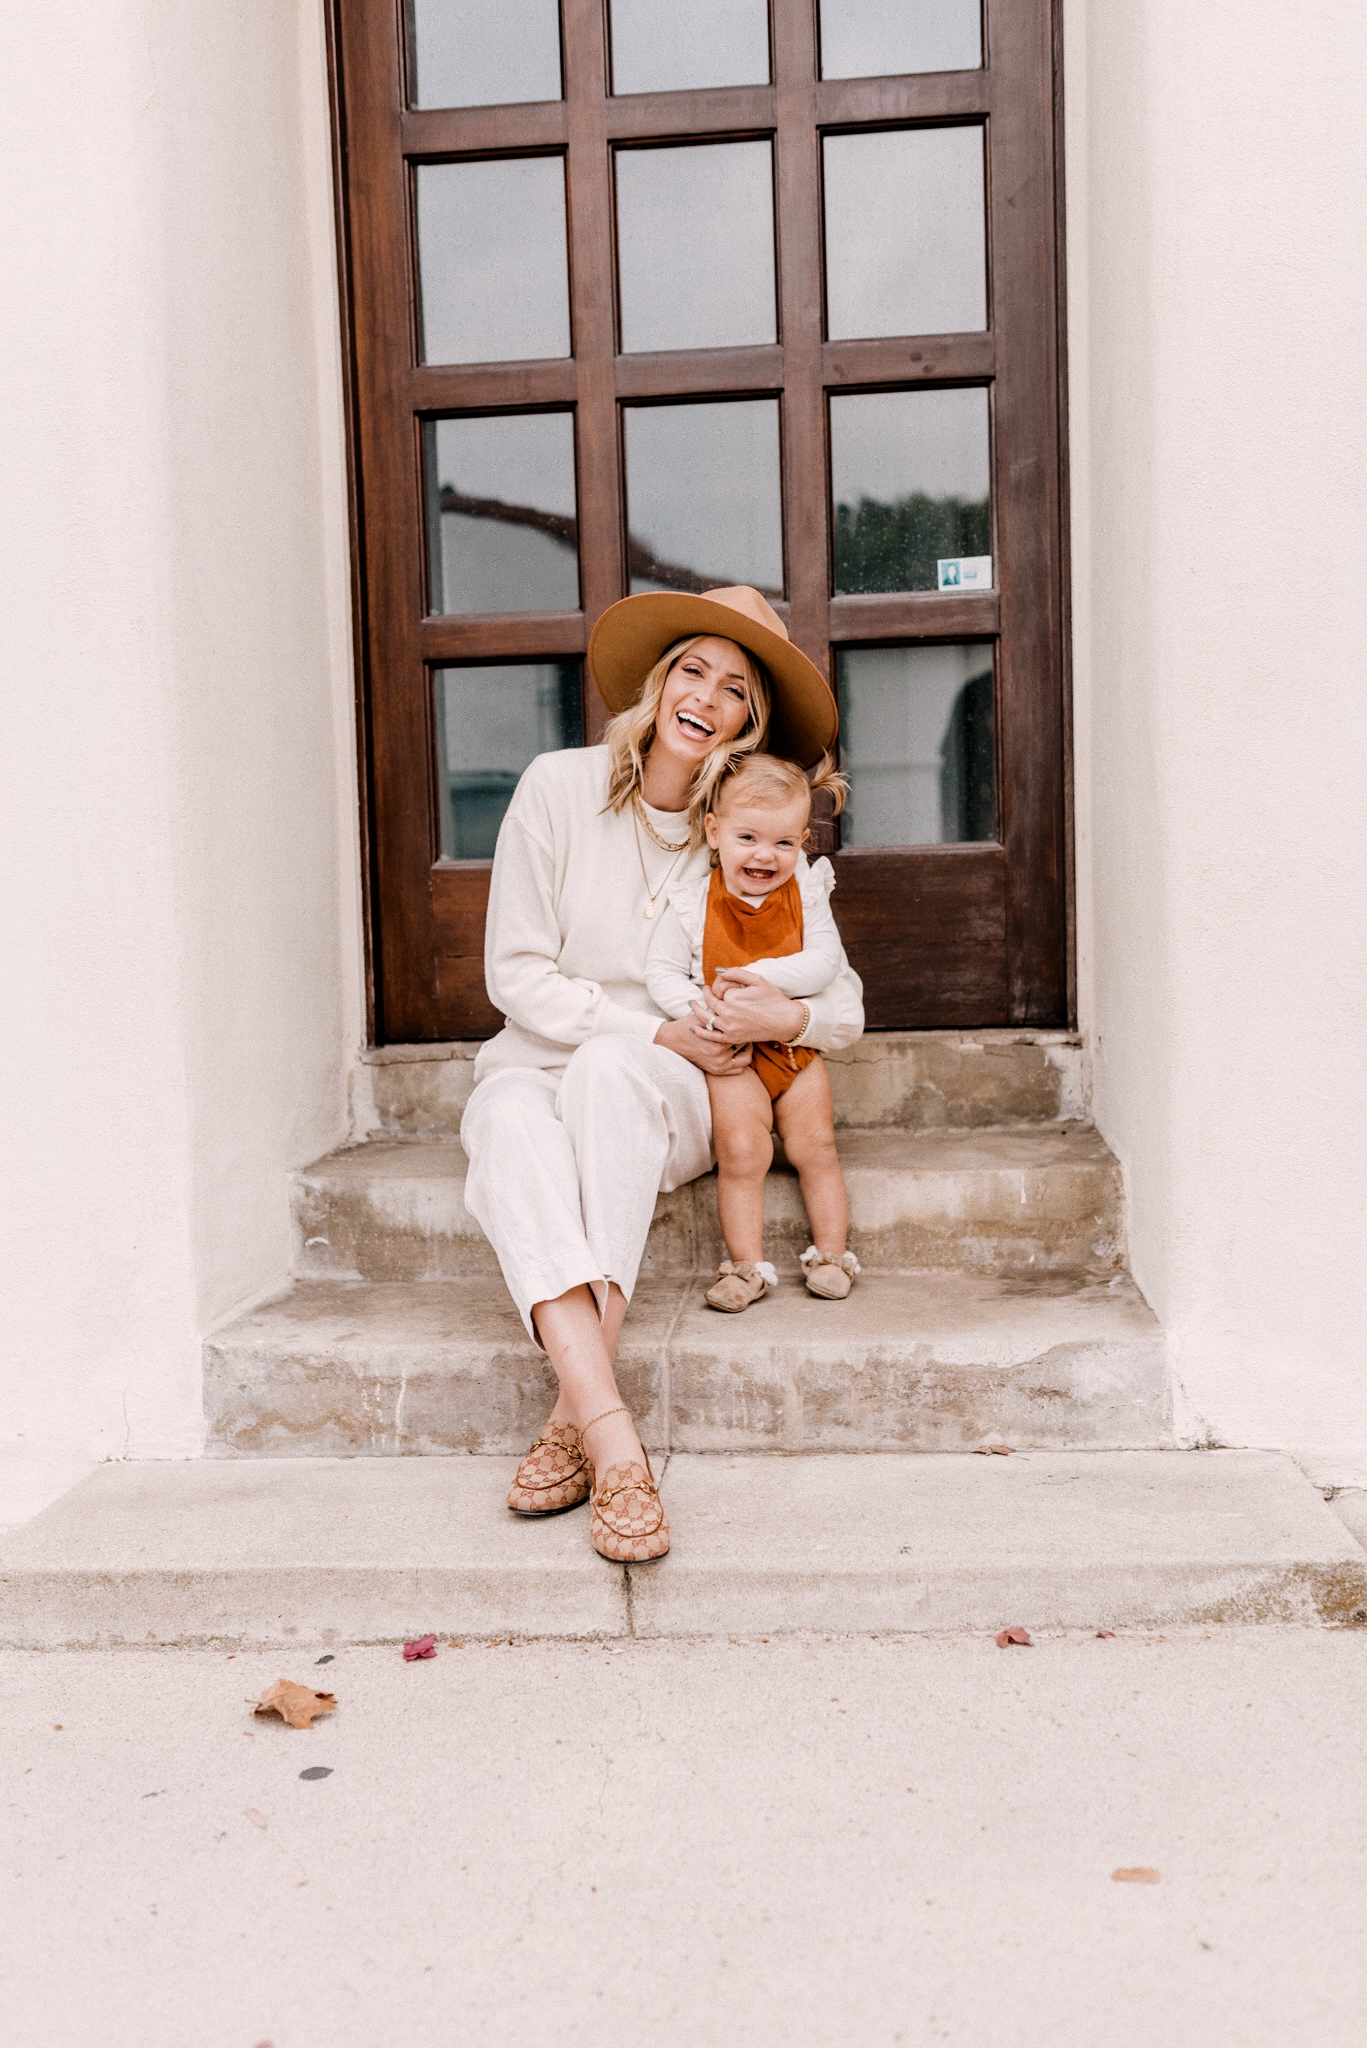 Fall fedora Hats |Kids Winter Clothes by popular San Diego motherhood blog, Navy Grace: image of a mom and her young daughter sitting together on some cement steps.